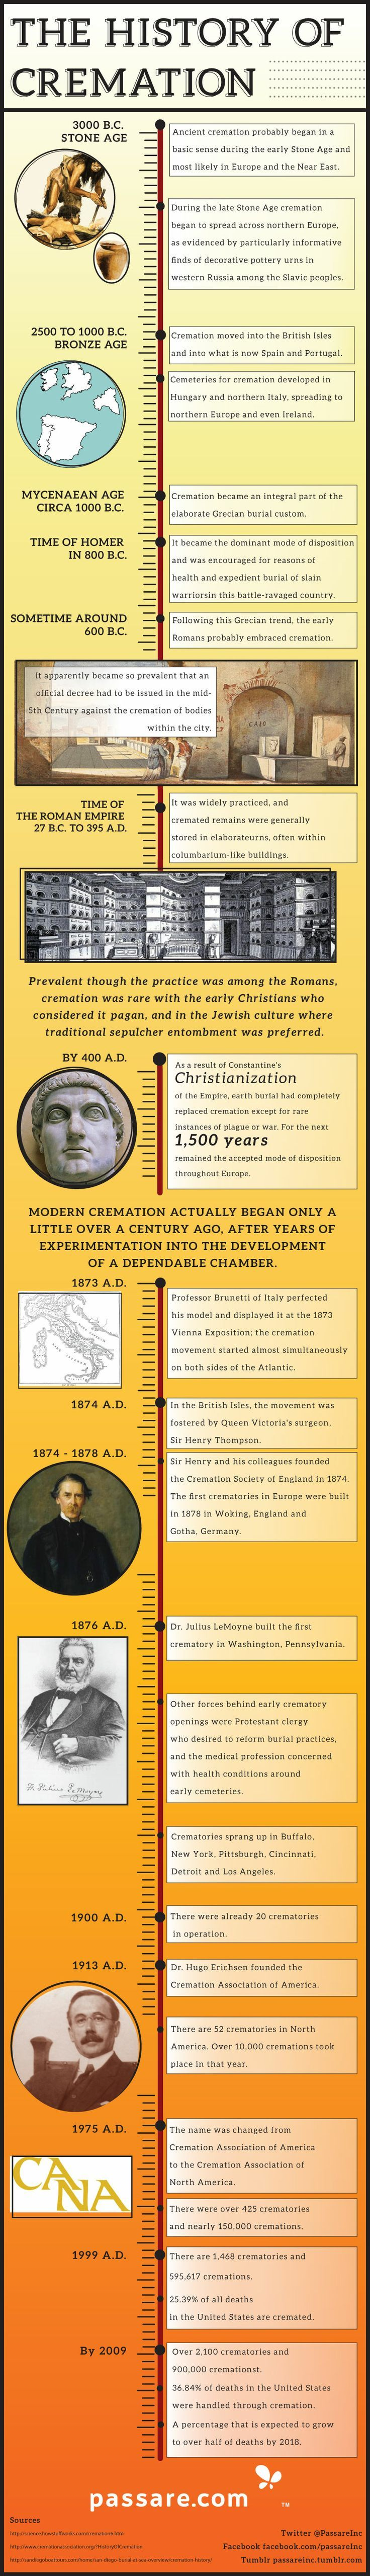 CONFESSIONS OF A FUNERAL DIRECTOR » History of Cremation Infographic